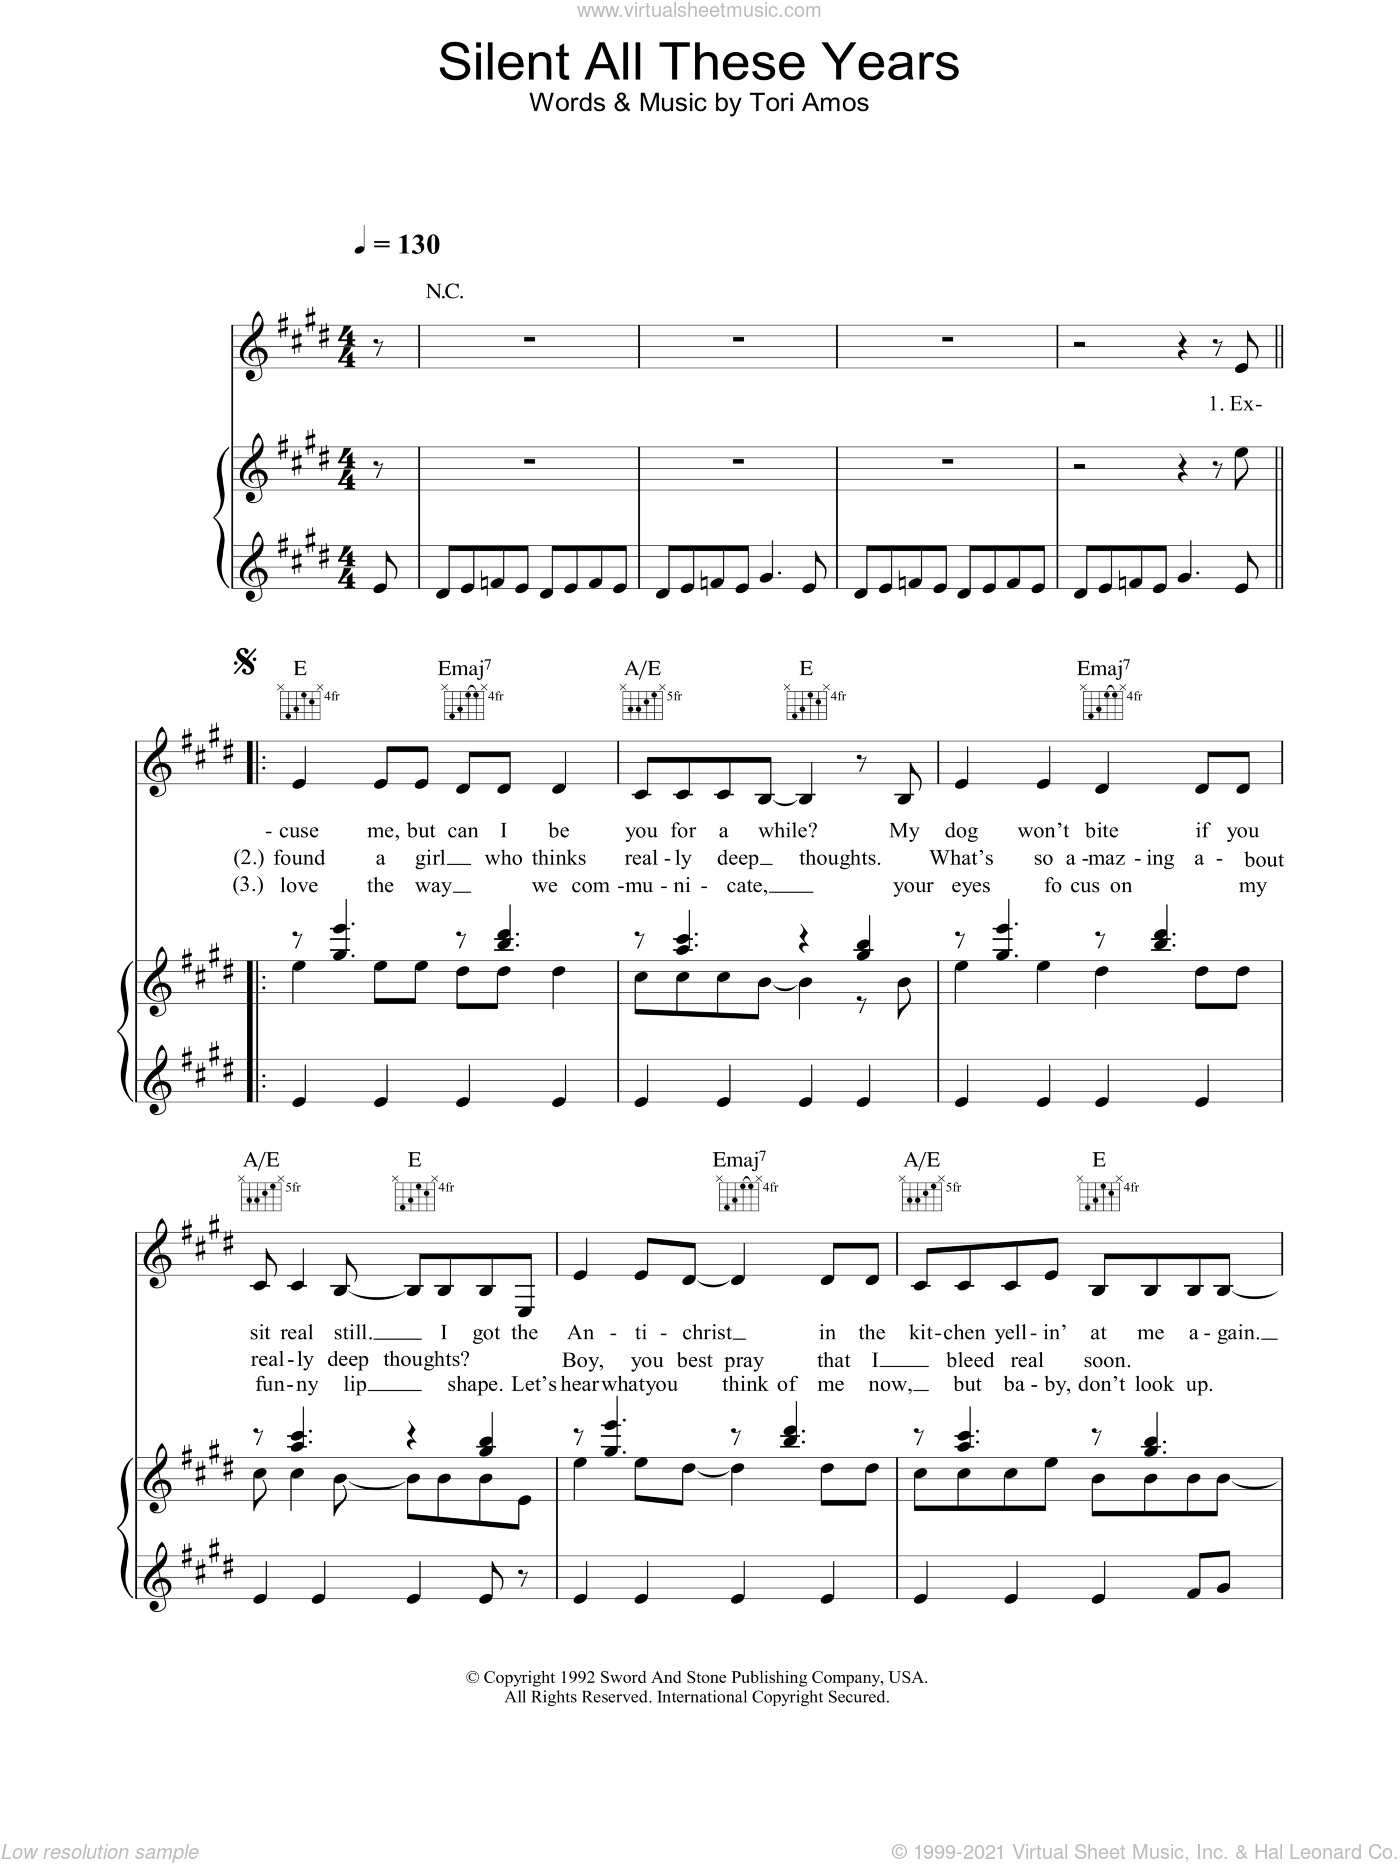 Silent All These Years sheet music for voice, piano or guitar by Tori Amos, intermediate skill level